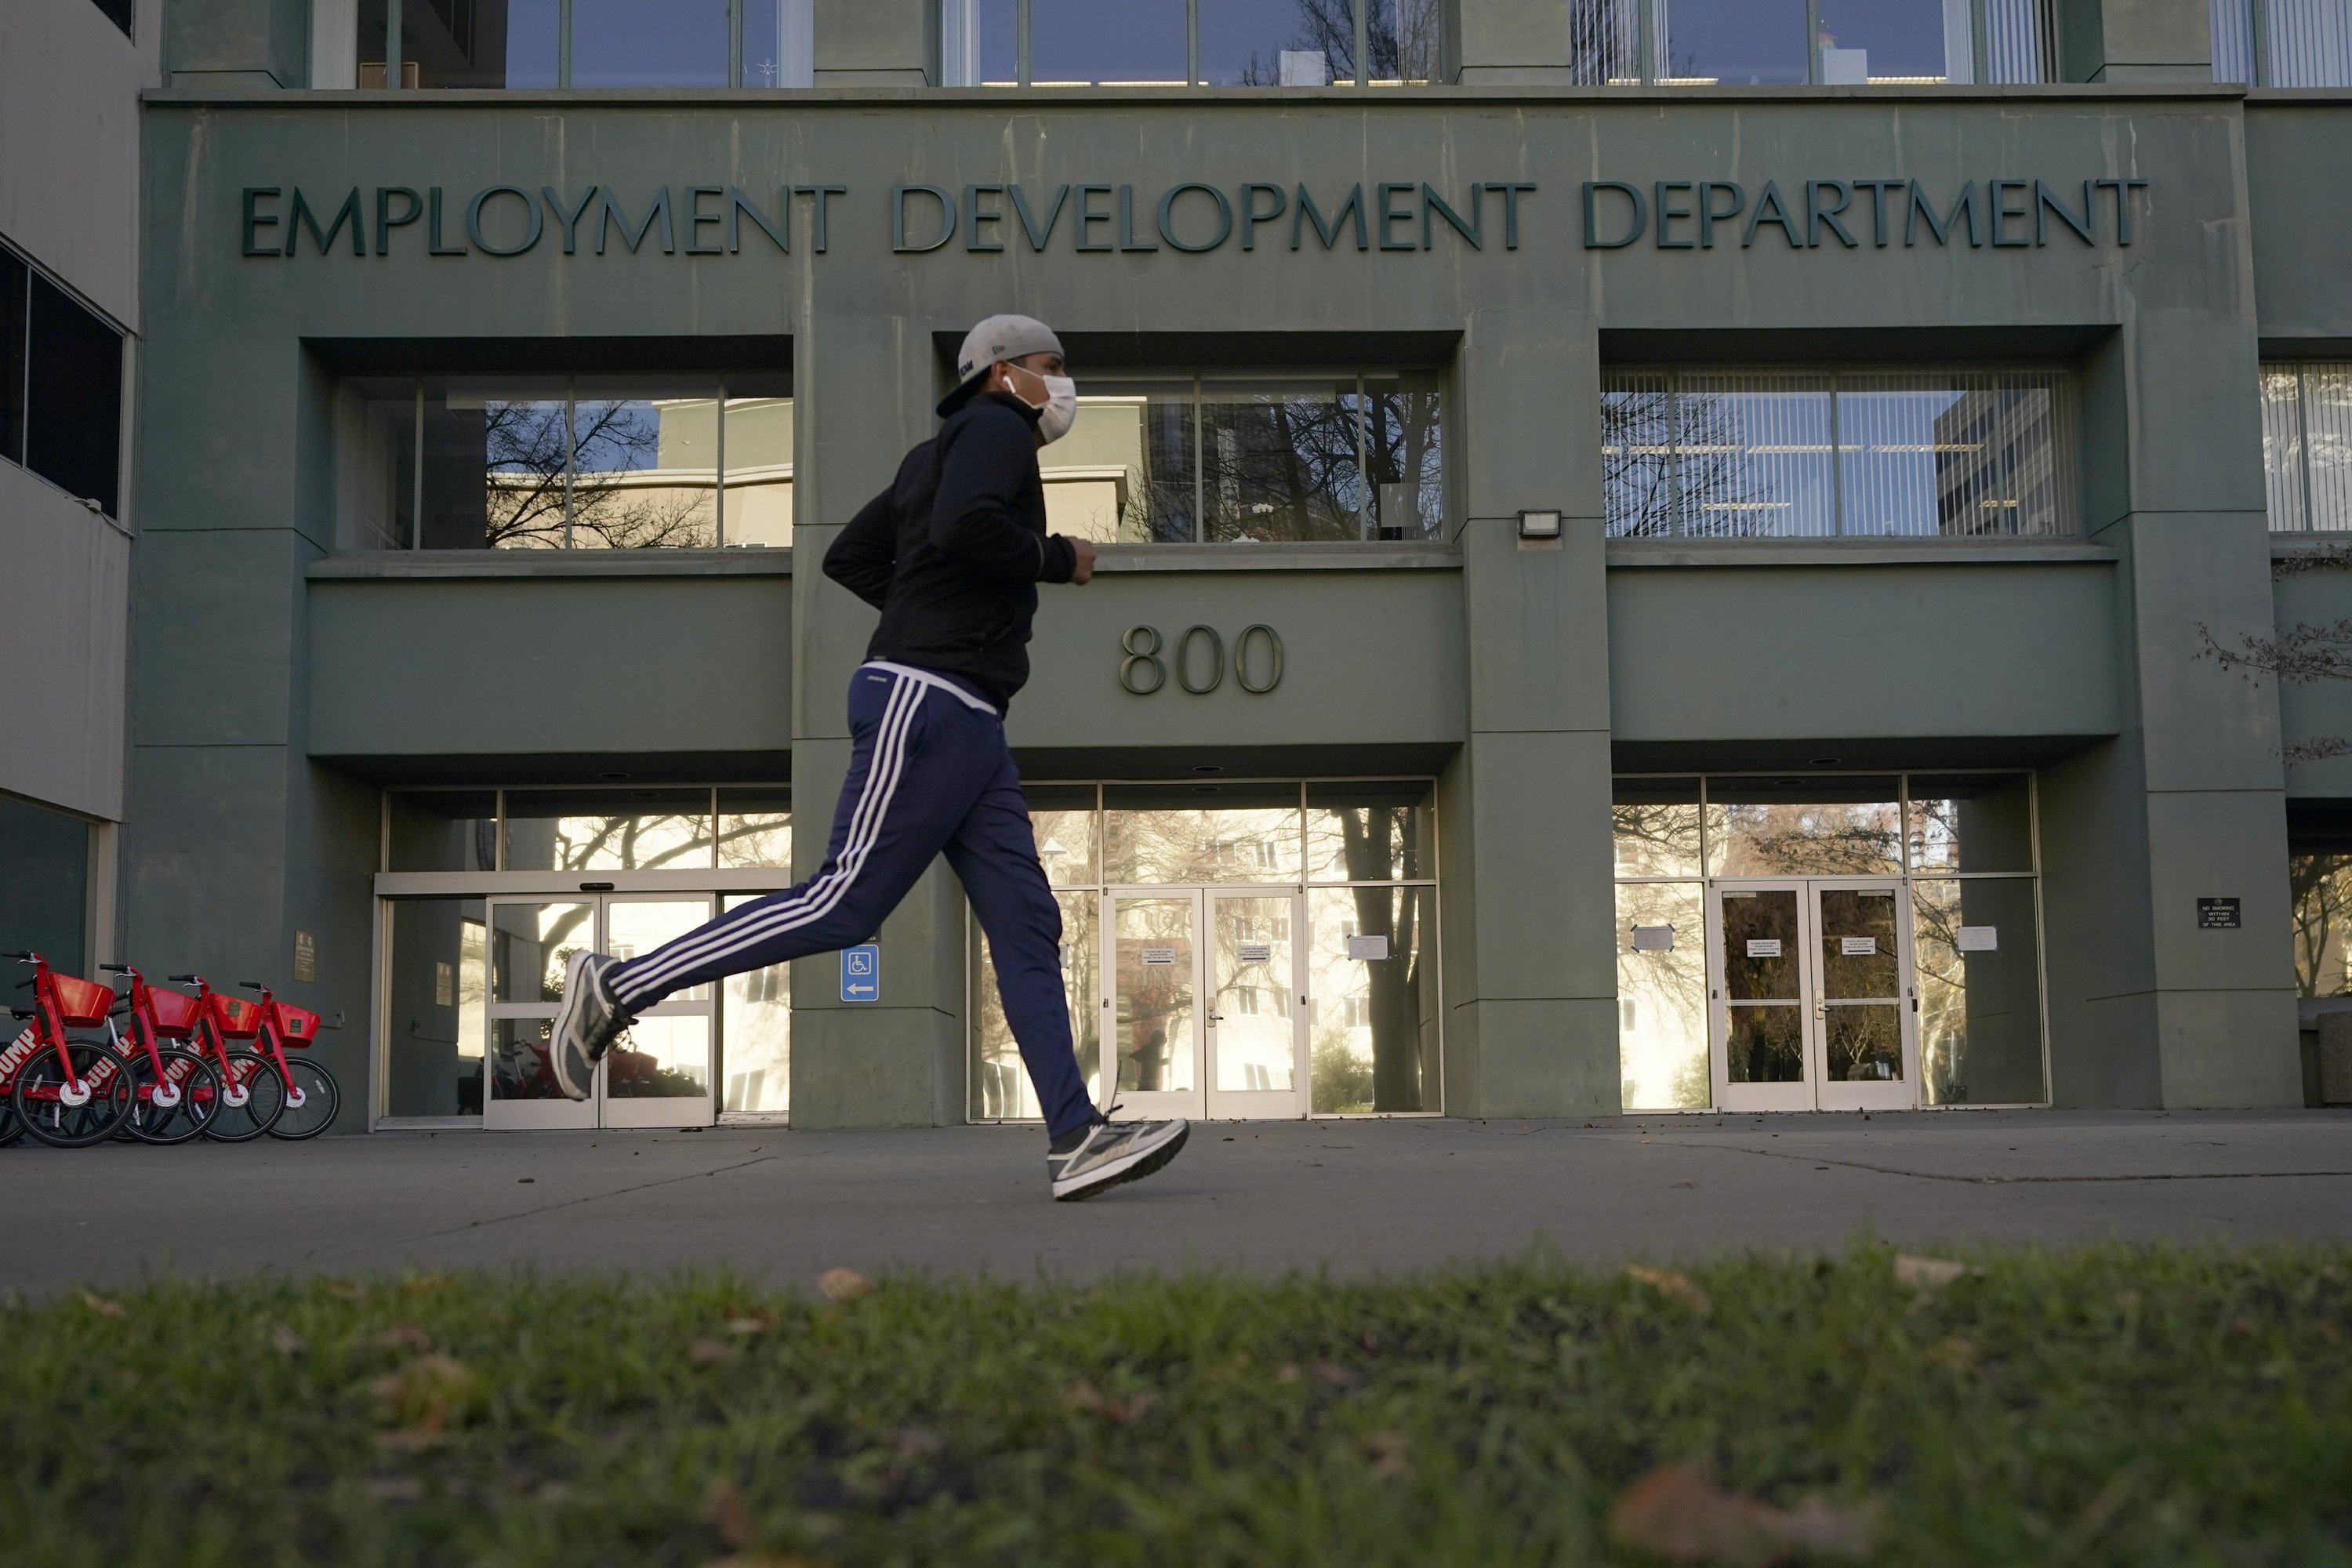 California: Criminal rings loot billions in jobless funds